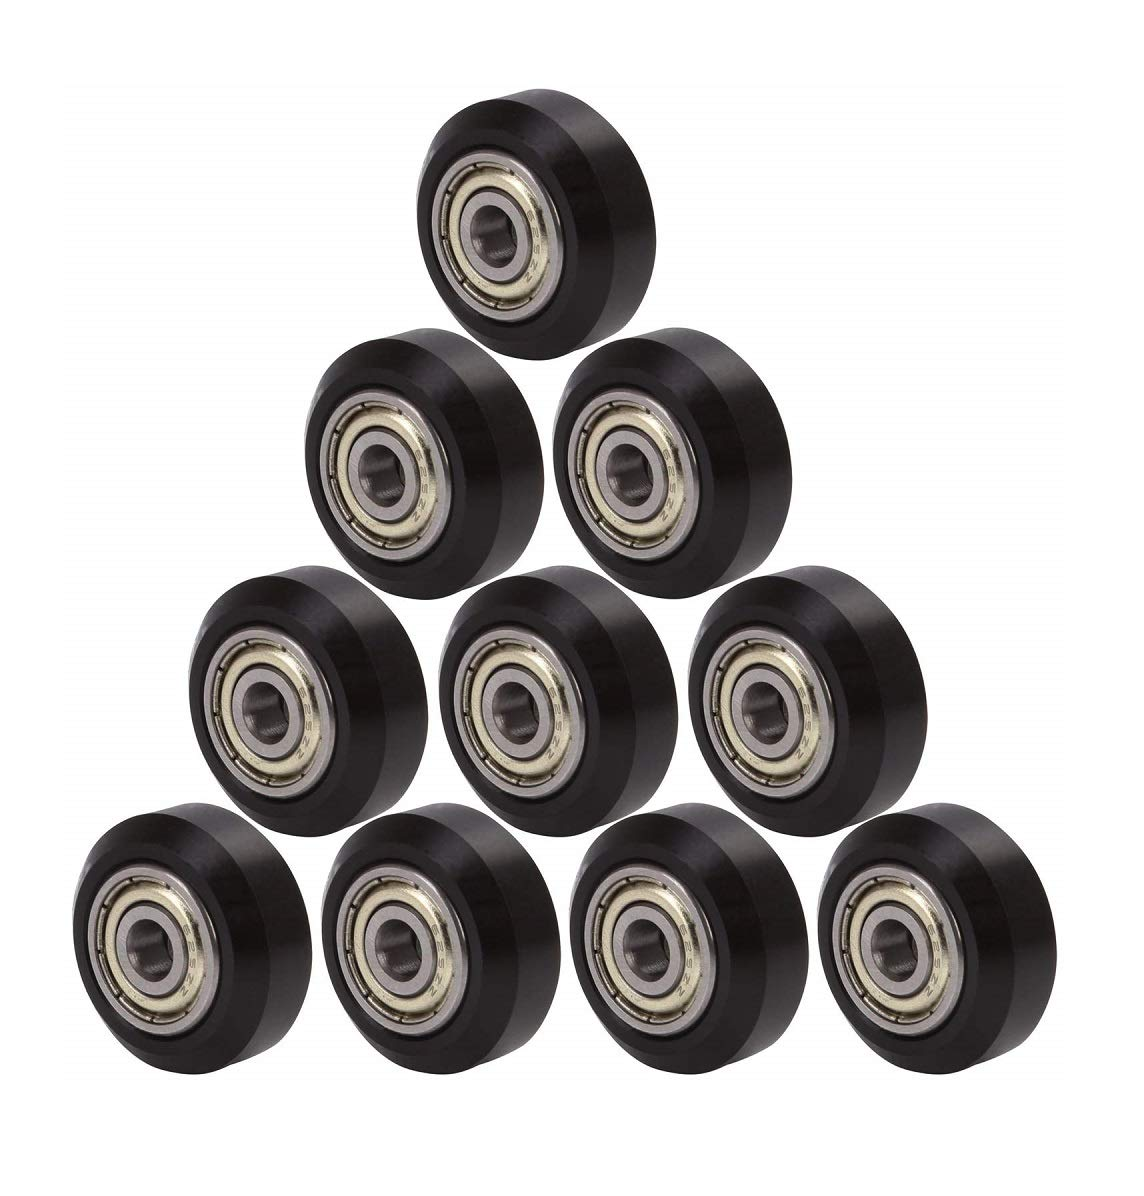 CHPOWER Big Plastic Pulley Wheel with Bearing Idler Pulley Gear Perlin Wheel for Creality CR-10, CR-10S, S4, S5, Ender, Ender 3 Pro, CR-10S Pro 3D Printers, Pack of 10, Black